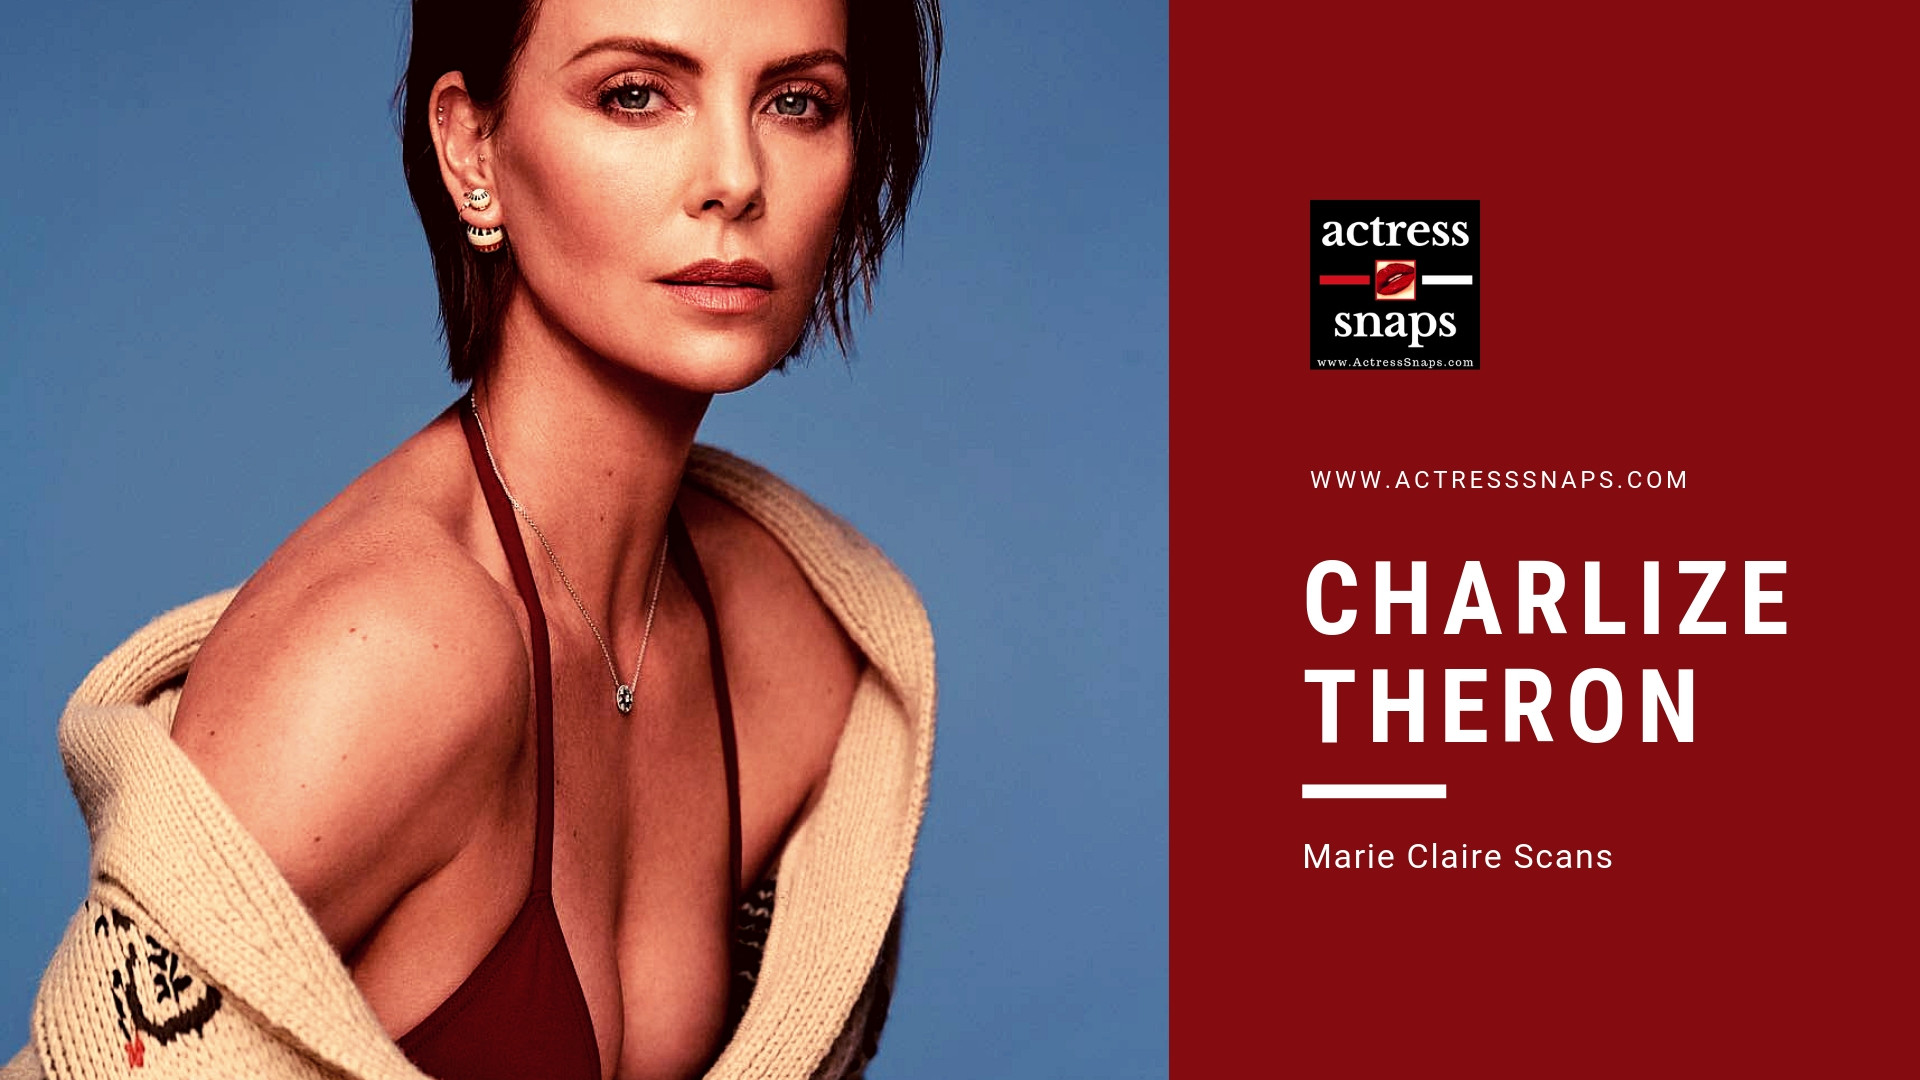 Charlize Theron - Marie Claire Magazine Photos - Sexy Actress Pictures | Hot Actress Pictures - ActressSnaps.com